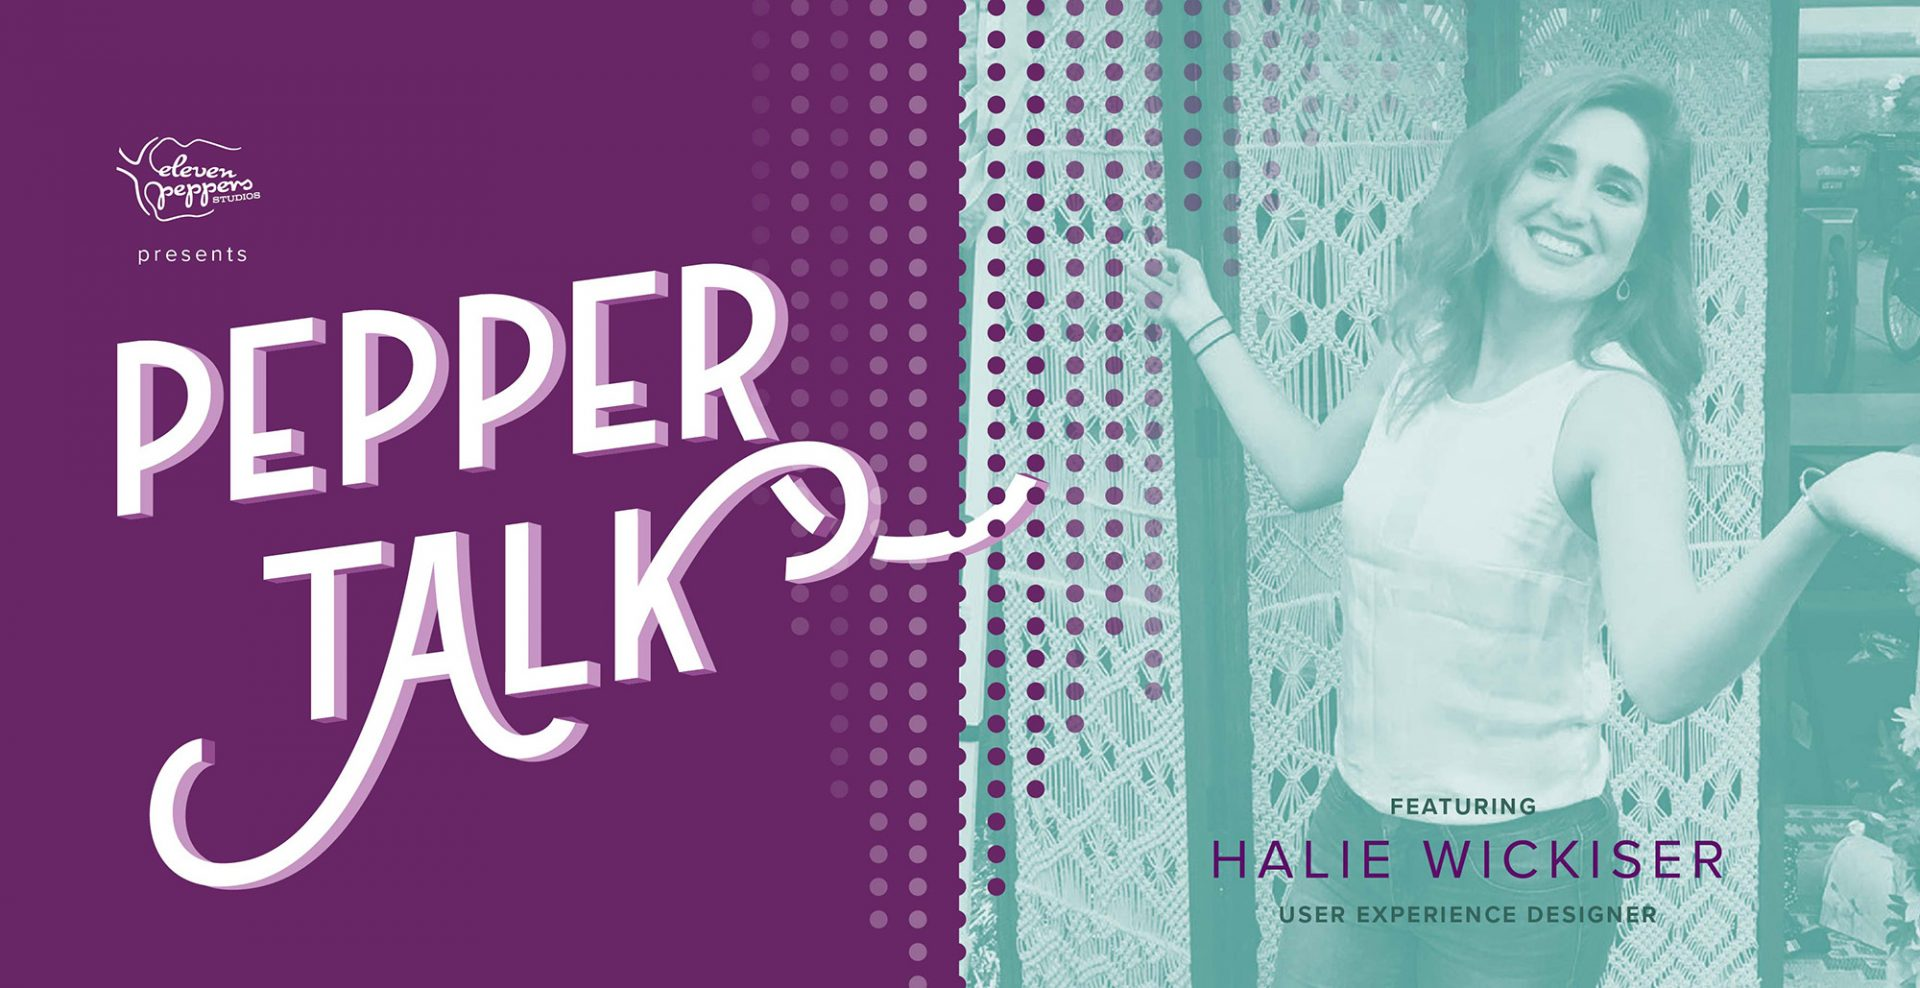 Pepper Talk with Halie Wickiser